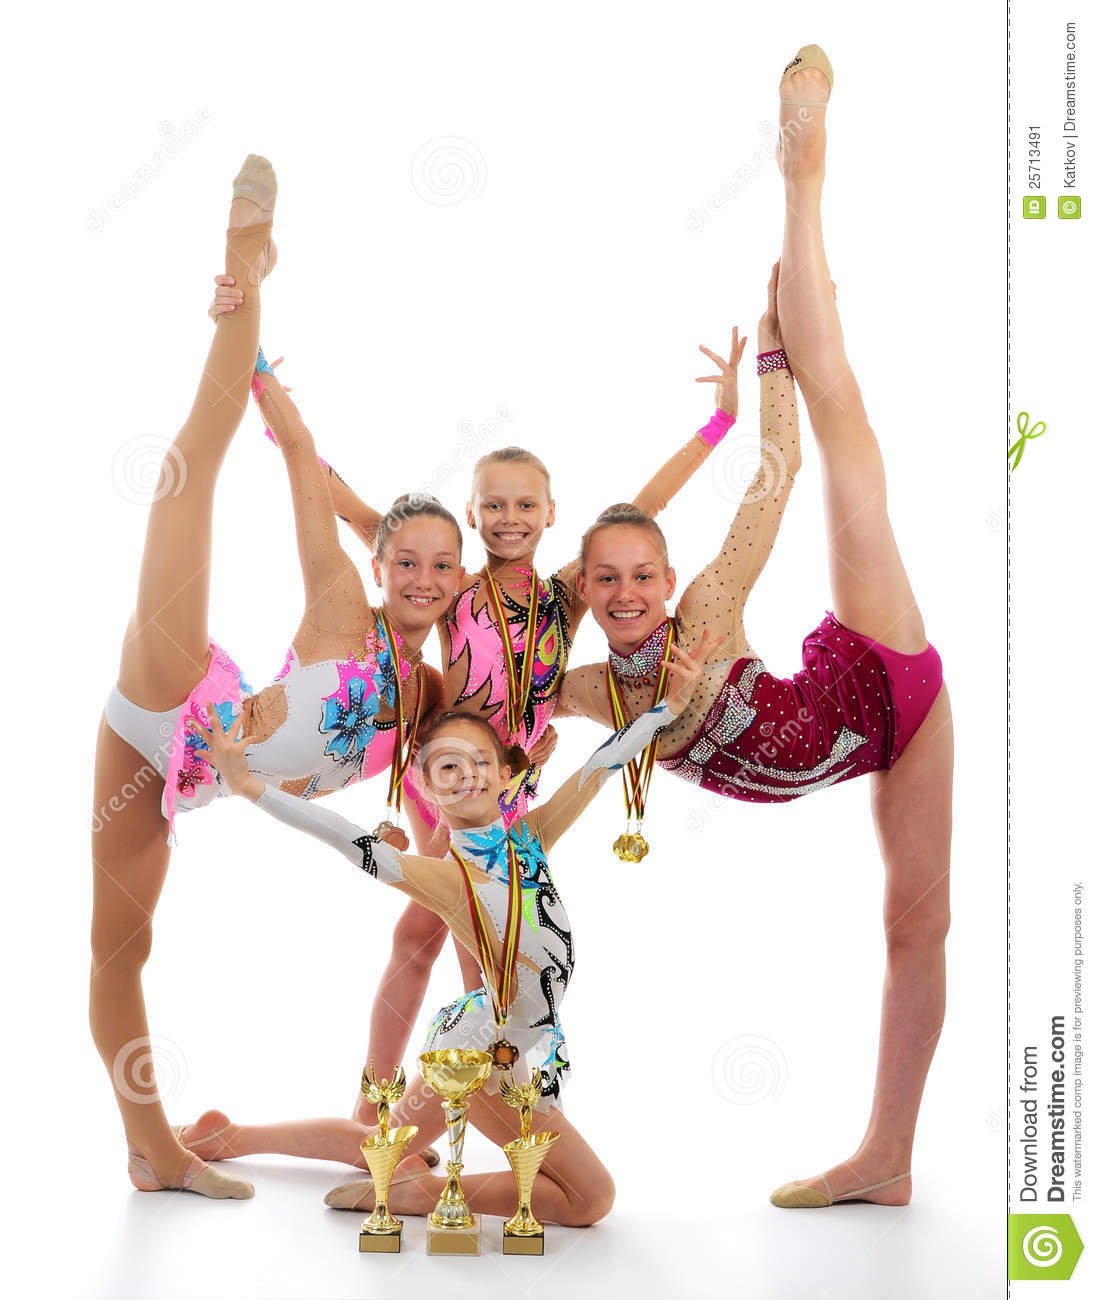 Young Gymnasts Stock Image - Image: 25713491young gymnast